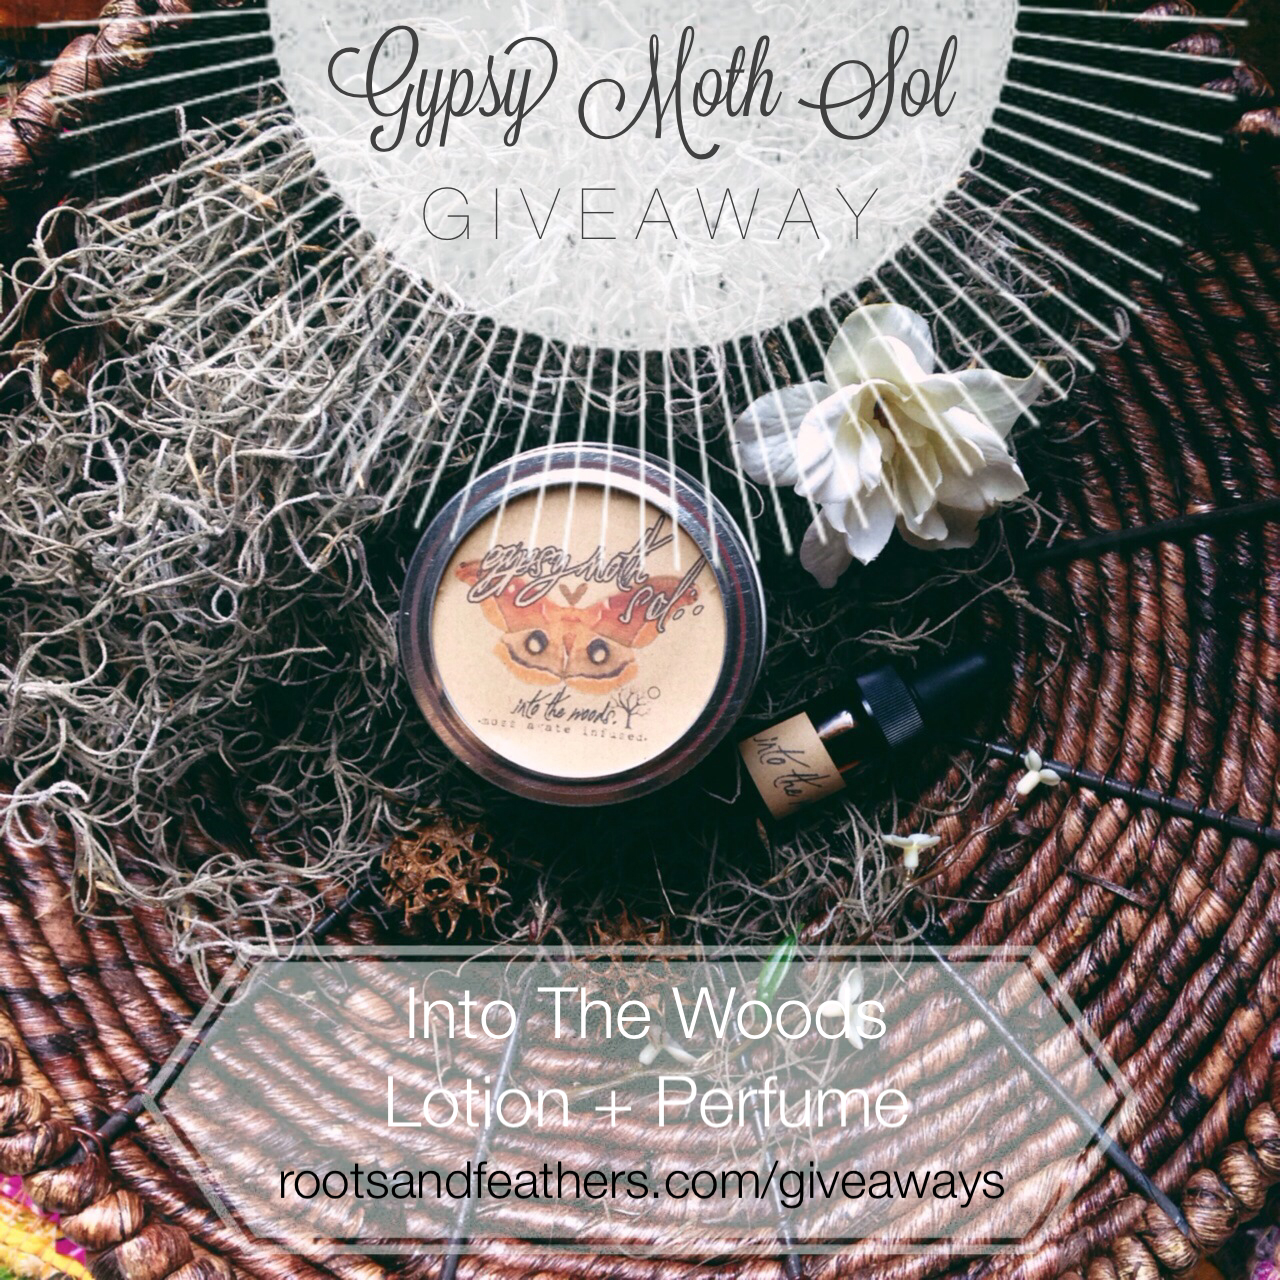 Gypsy Moth Sol Giveaway via rootsandfeathers.com